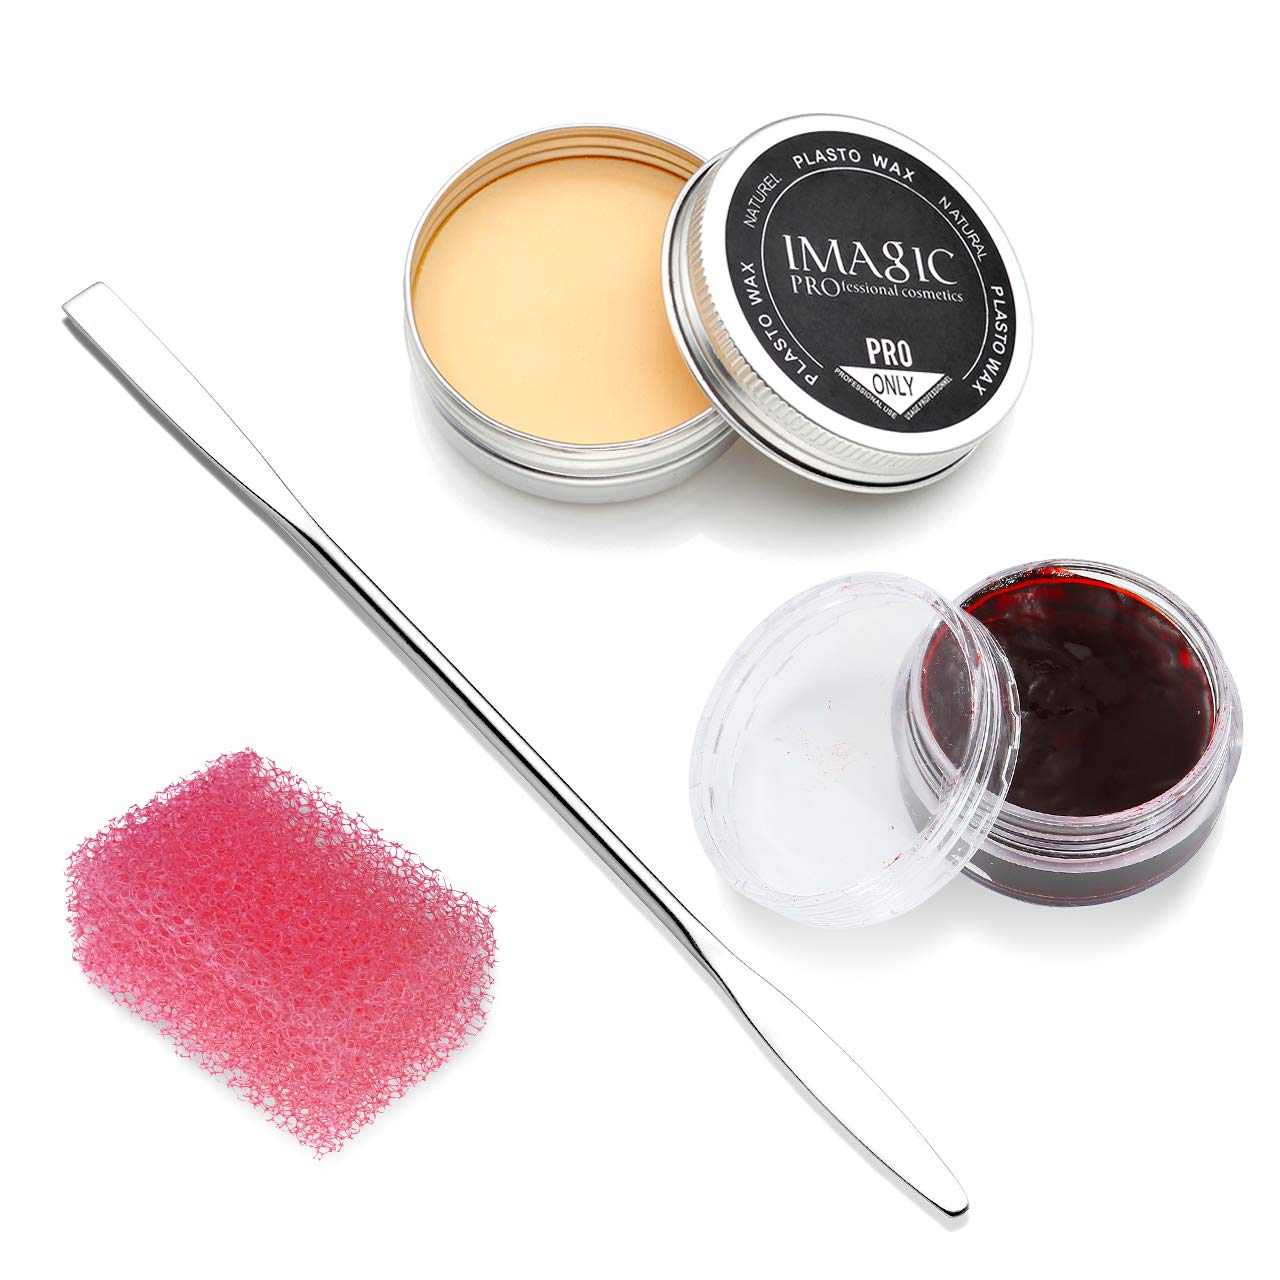 CCbeauty Special Effects Stage Makeup Wax (1.16 Oz) Fake Wound Moulding Scars Kit with Spatula,Scab Blood(0.63Oz) + Pink Stipple Sponge by CCbeauty